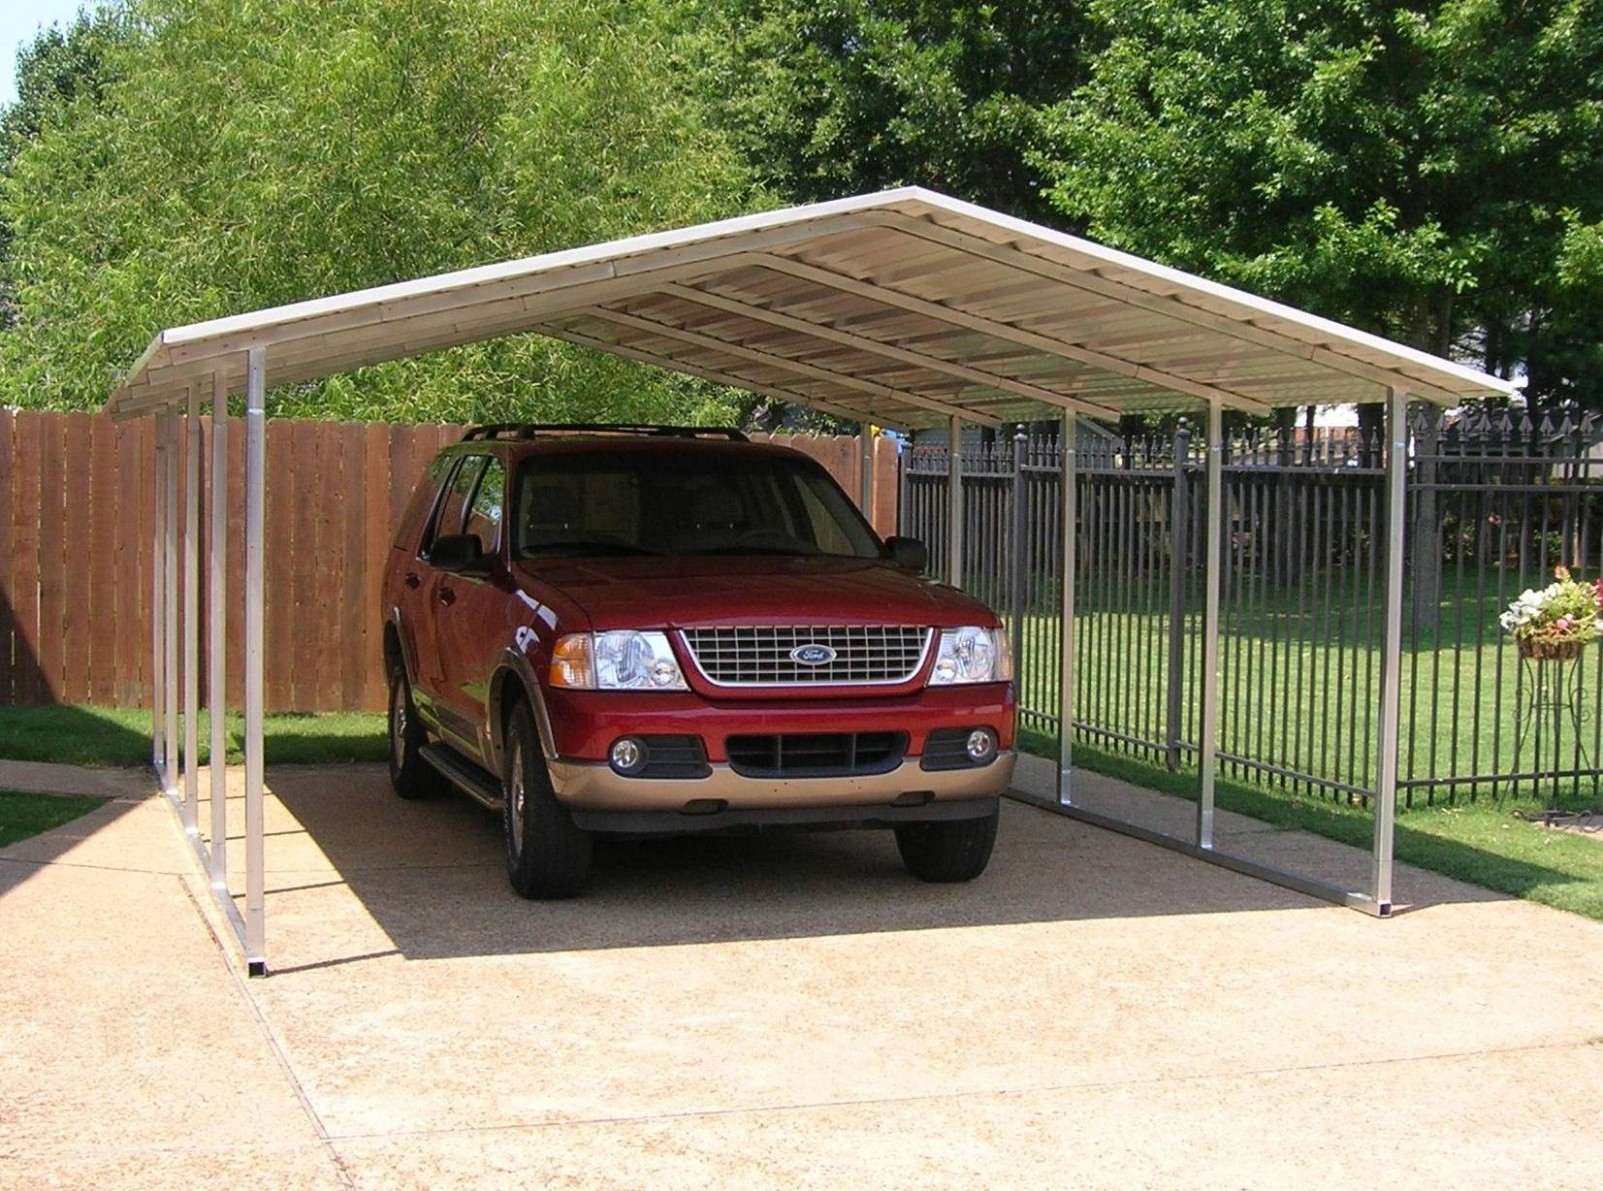 How To Have A Fantastic Carports Metal Carport Kits With Minimal Spending | carports metal carport kits